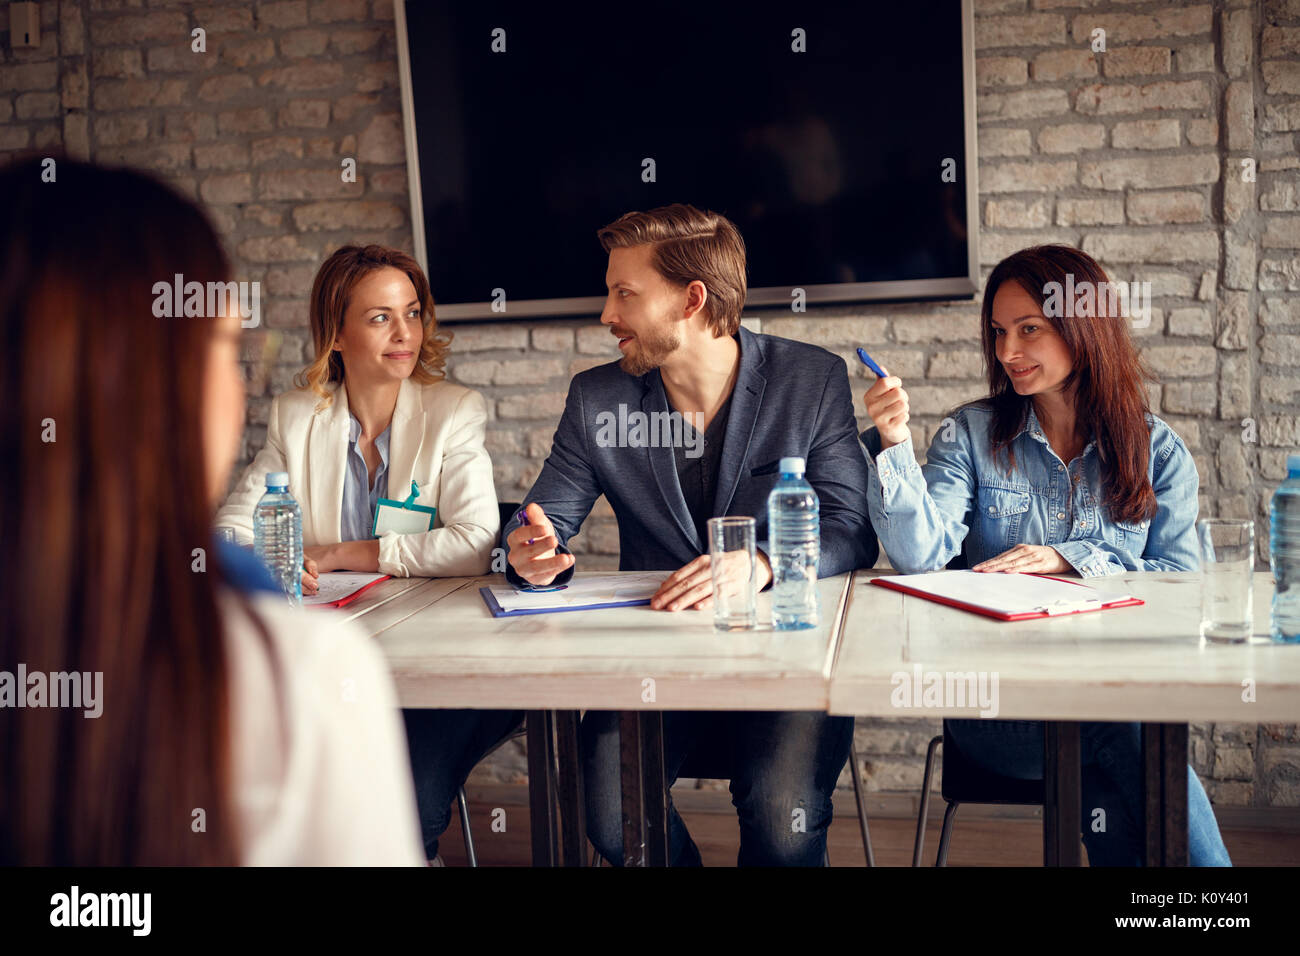 Discussion business people for job interview with candidate on meeting - Stock Image